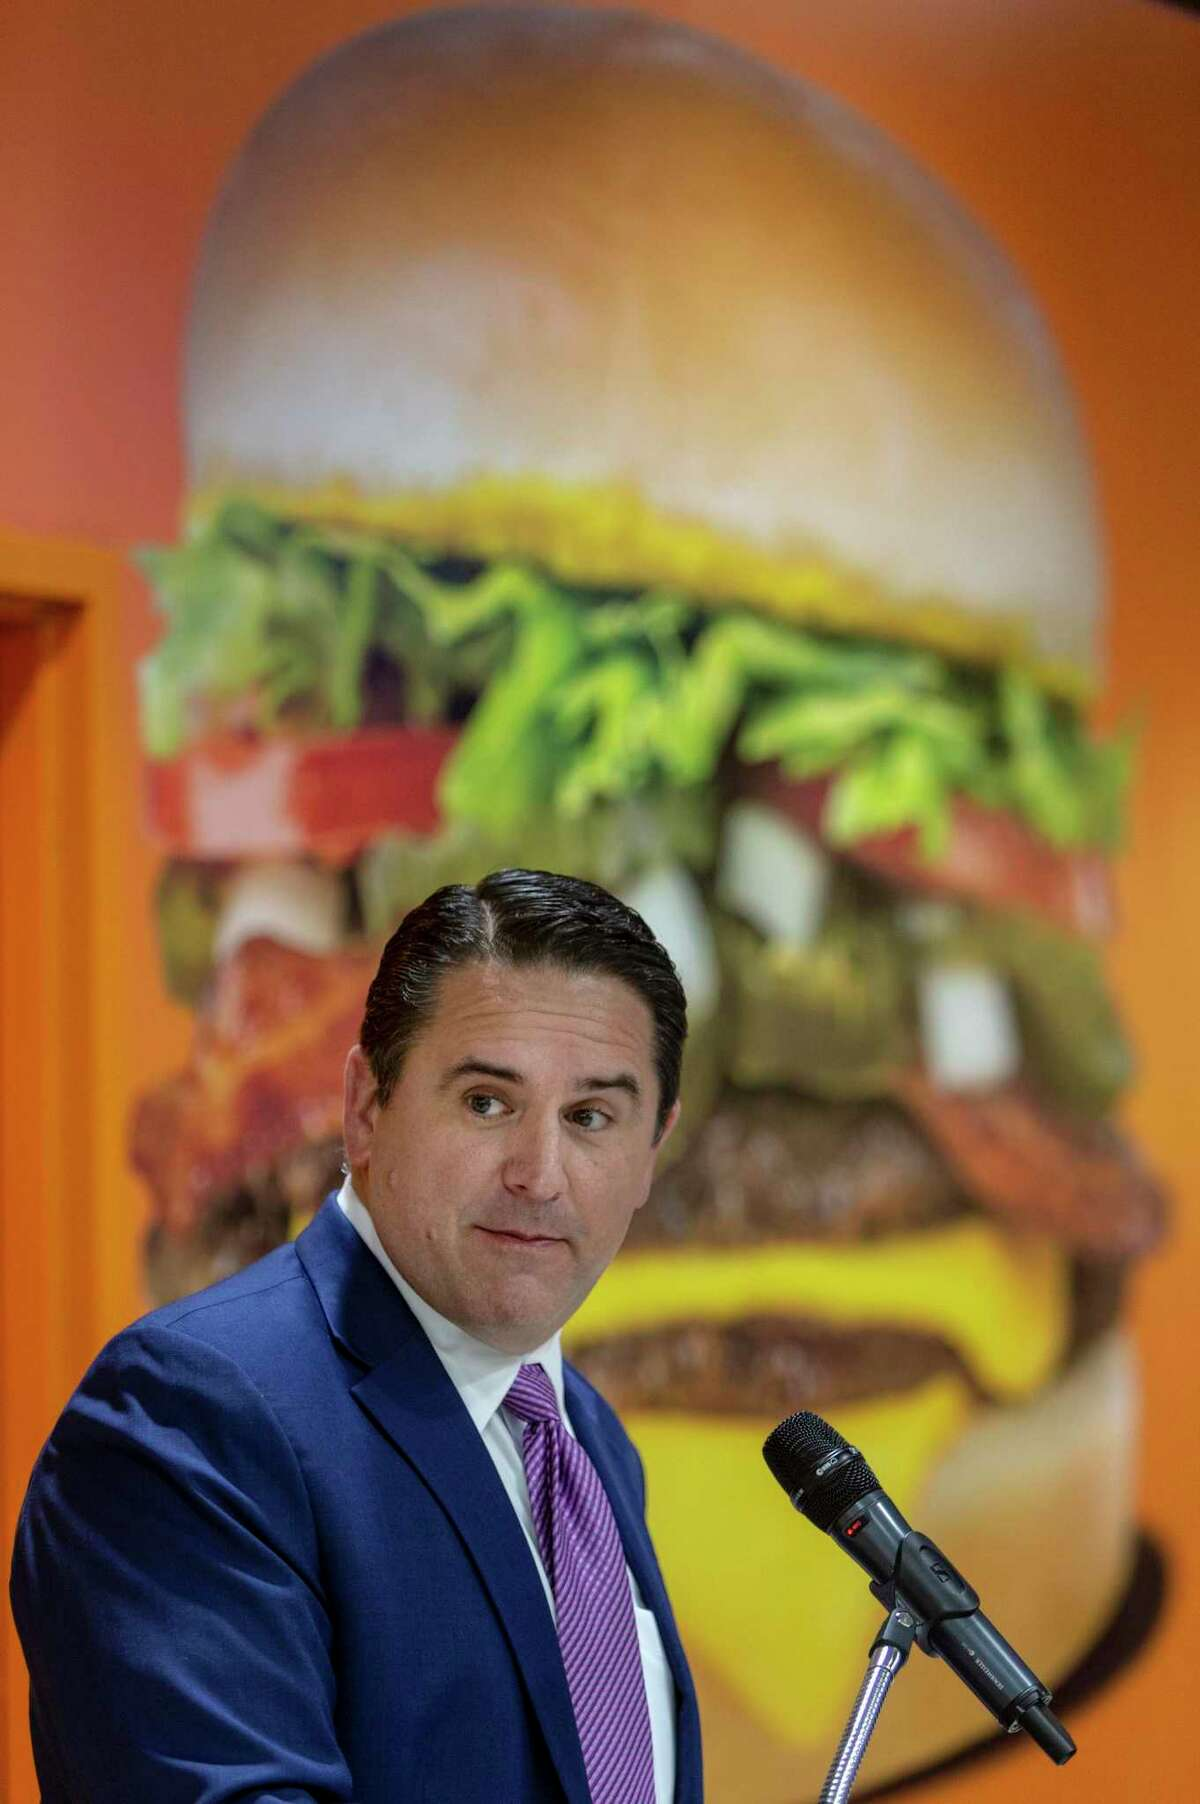 San Antonio city manager Erik Walsh speaks Tuesday morning, Aug. 24, 2021 at the San Antonio Airport during a news conference to announce Whataburger will be opening a store in Terminal B. Whataburger enters the airport after the 2019 controversy surrounding the City of San Antonio's handling of a contract for a Chick-fil-A restaurant at the same location.